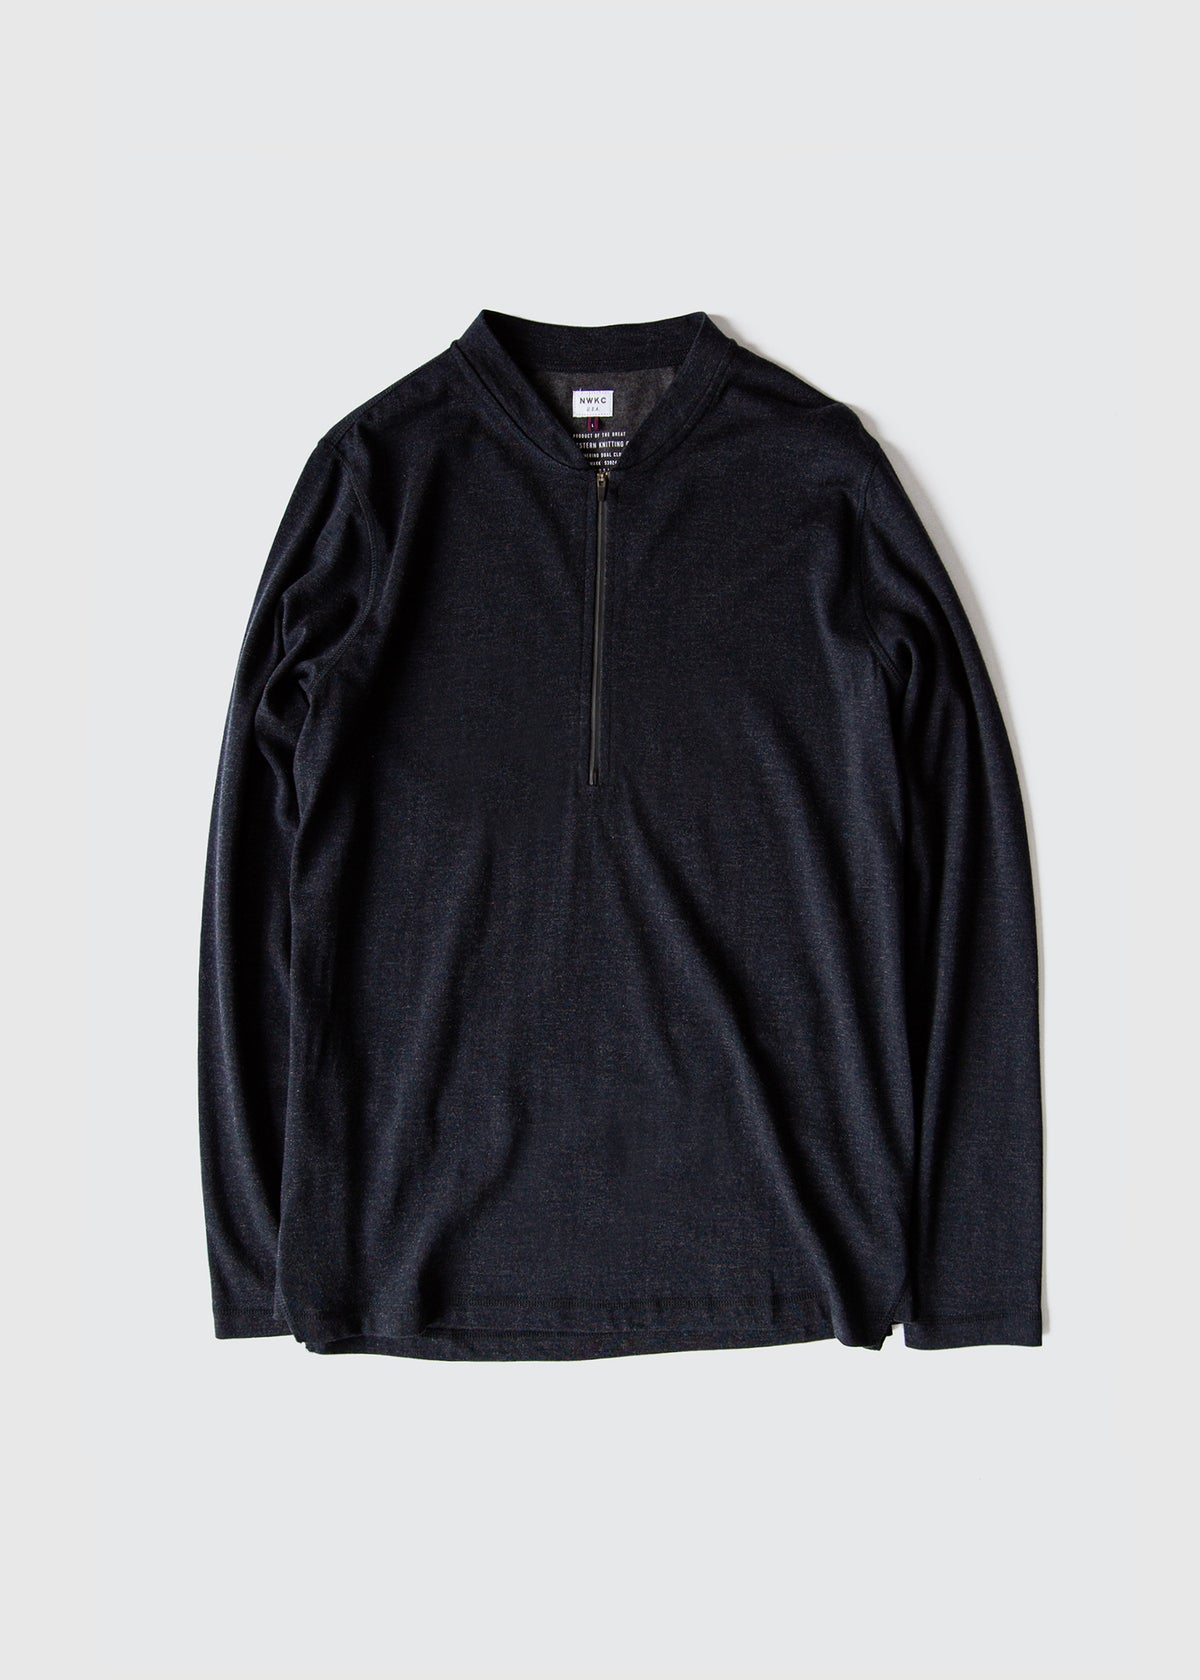 106 - 1/3 ZIP VARSITY - NAVY - Wilson & Willy's - MPLS Neighbor Goods